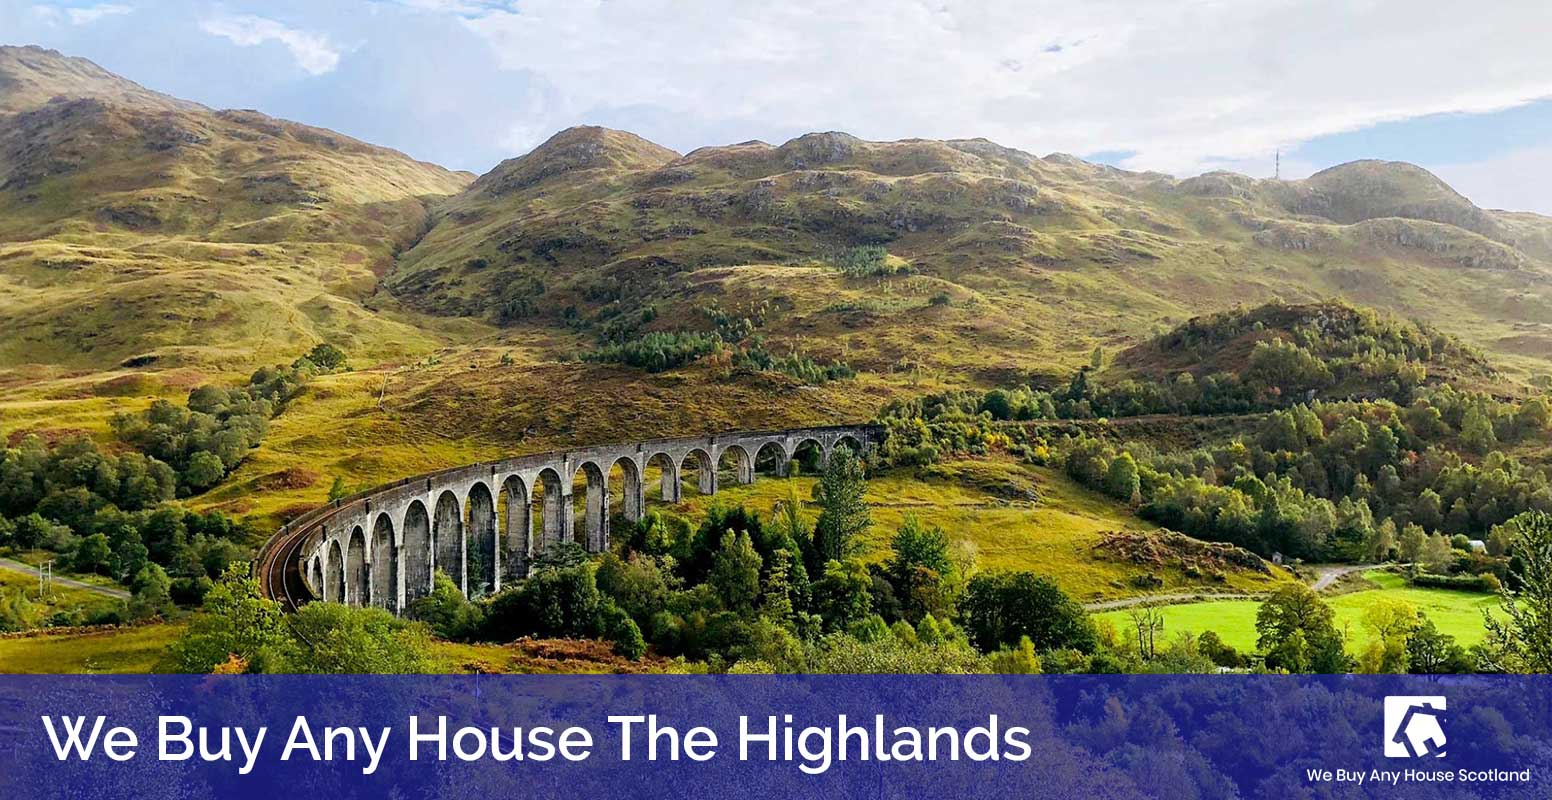 We Buy Any House The Highlands